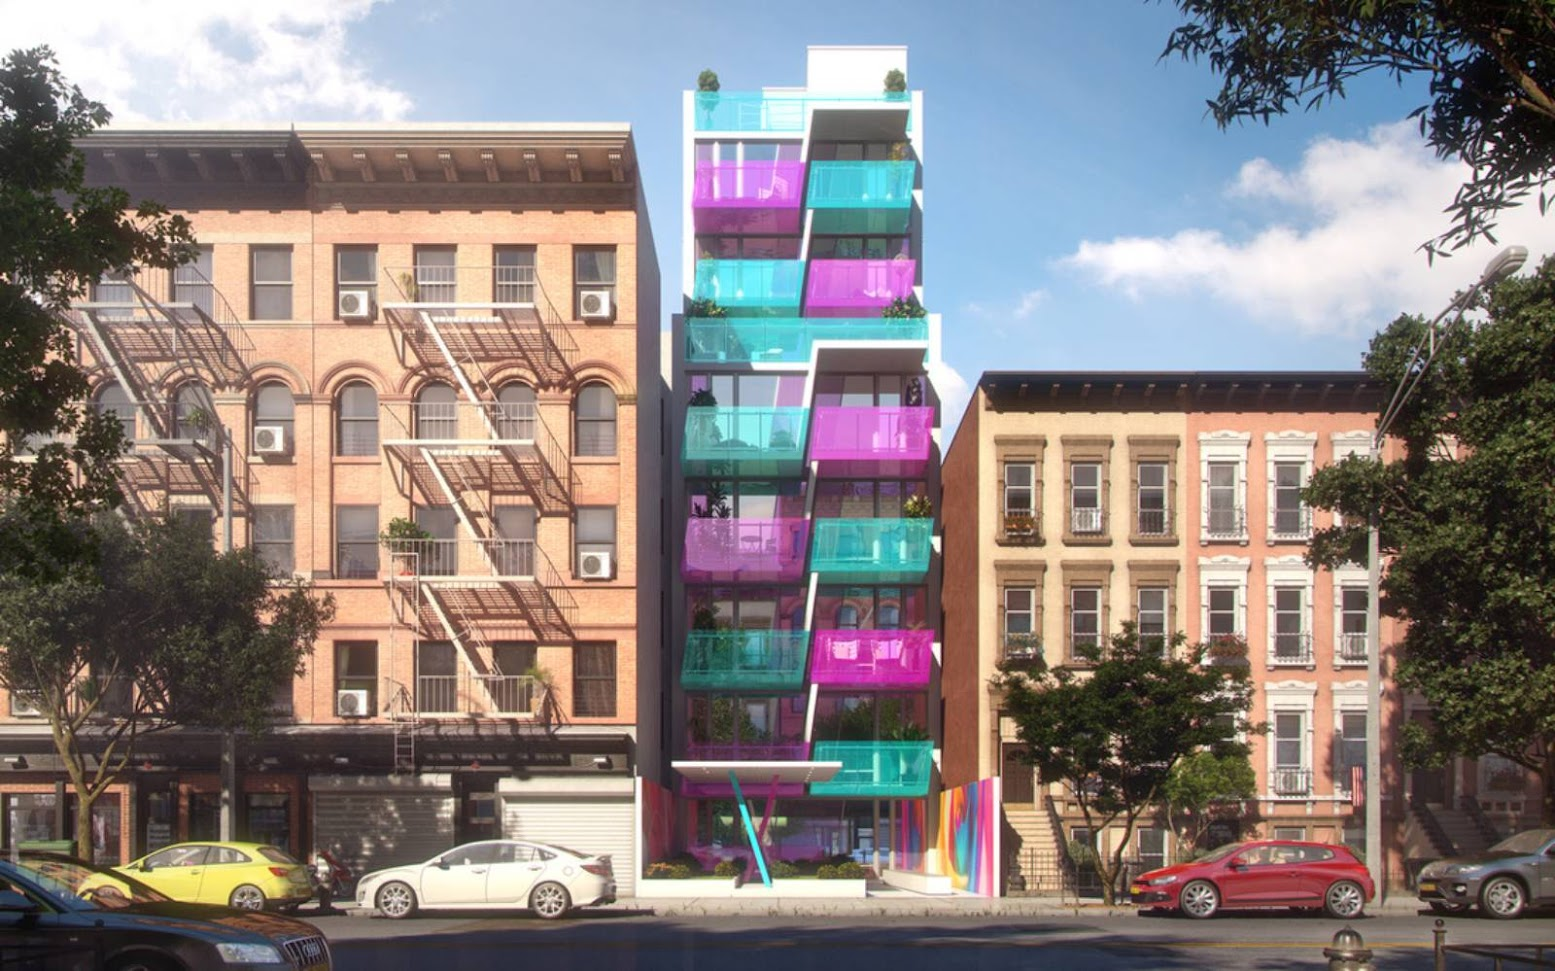 Pleasant Avenue, New York, Stati Uniti: [329 PLEASANT AVENUE BY KARIM RASHID]